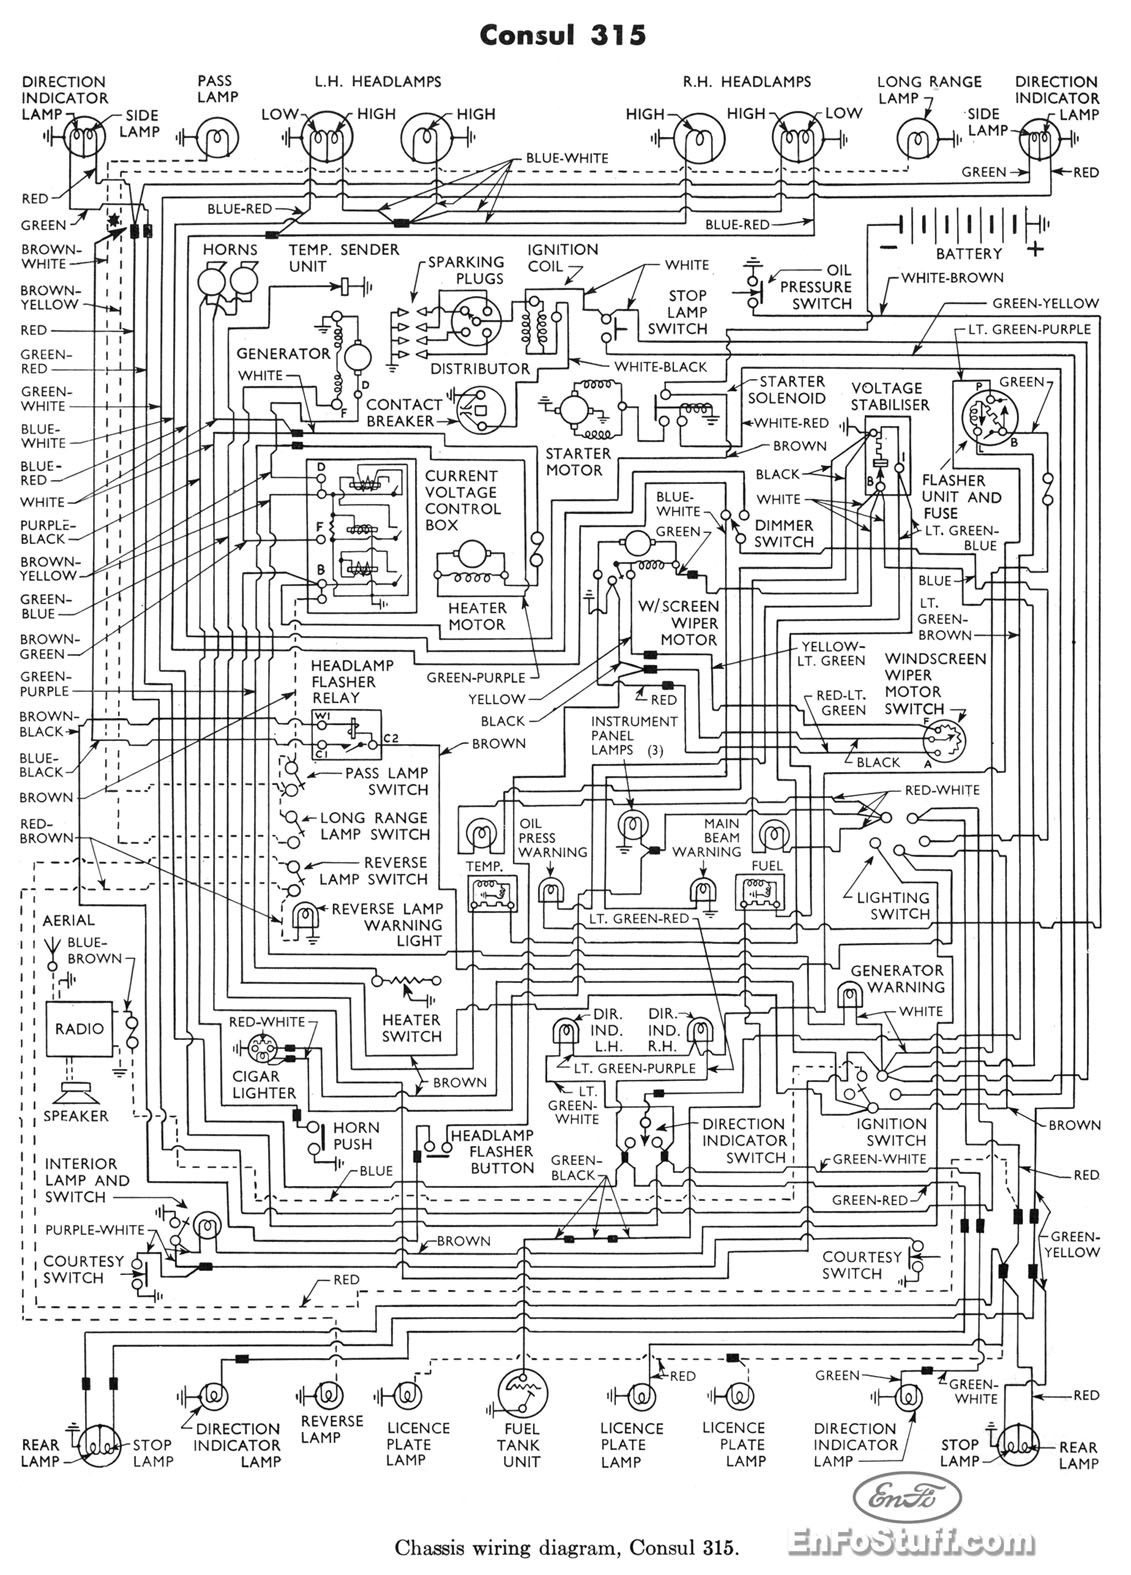 ford 7610 wiring diagram wiring diagram for a ford tractor 3930 the wiring diagram ford tractor wiring harness diagram vidim